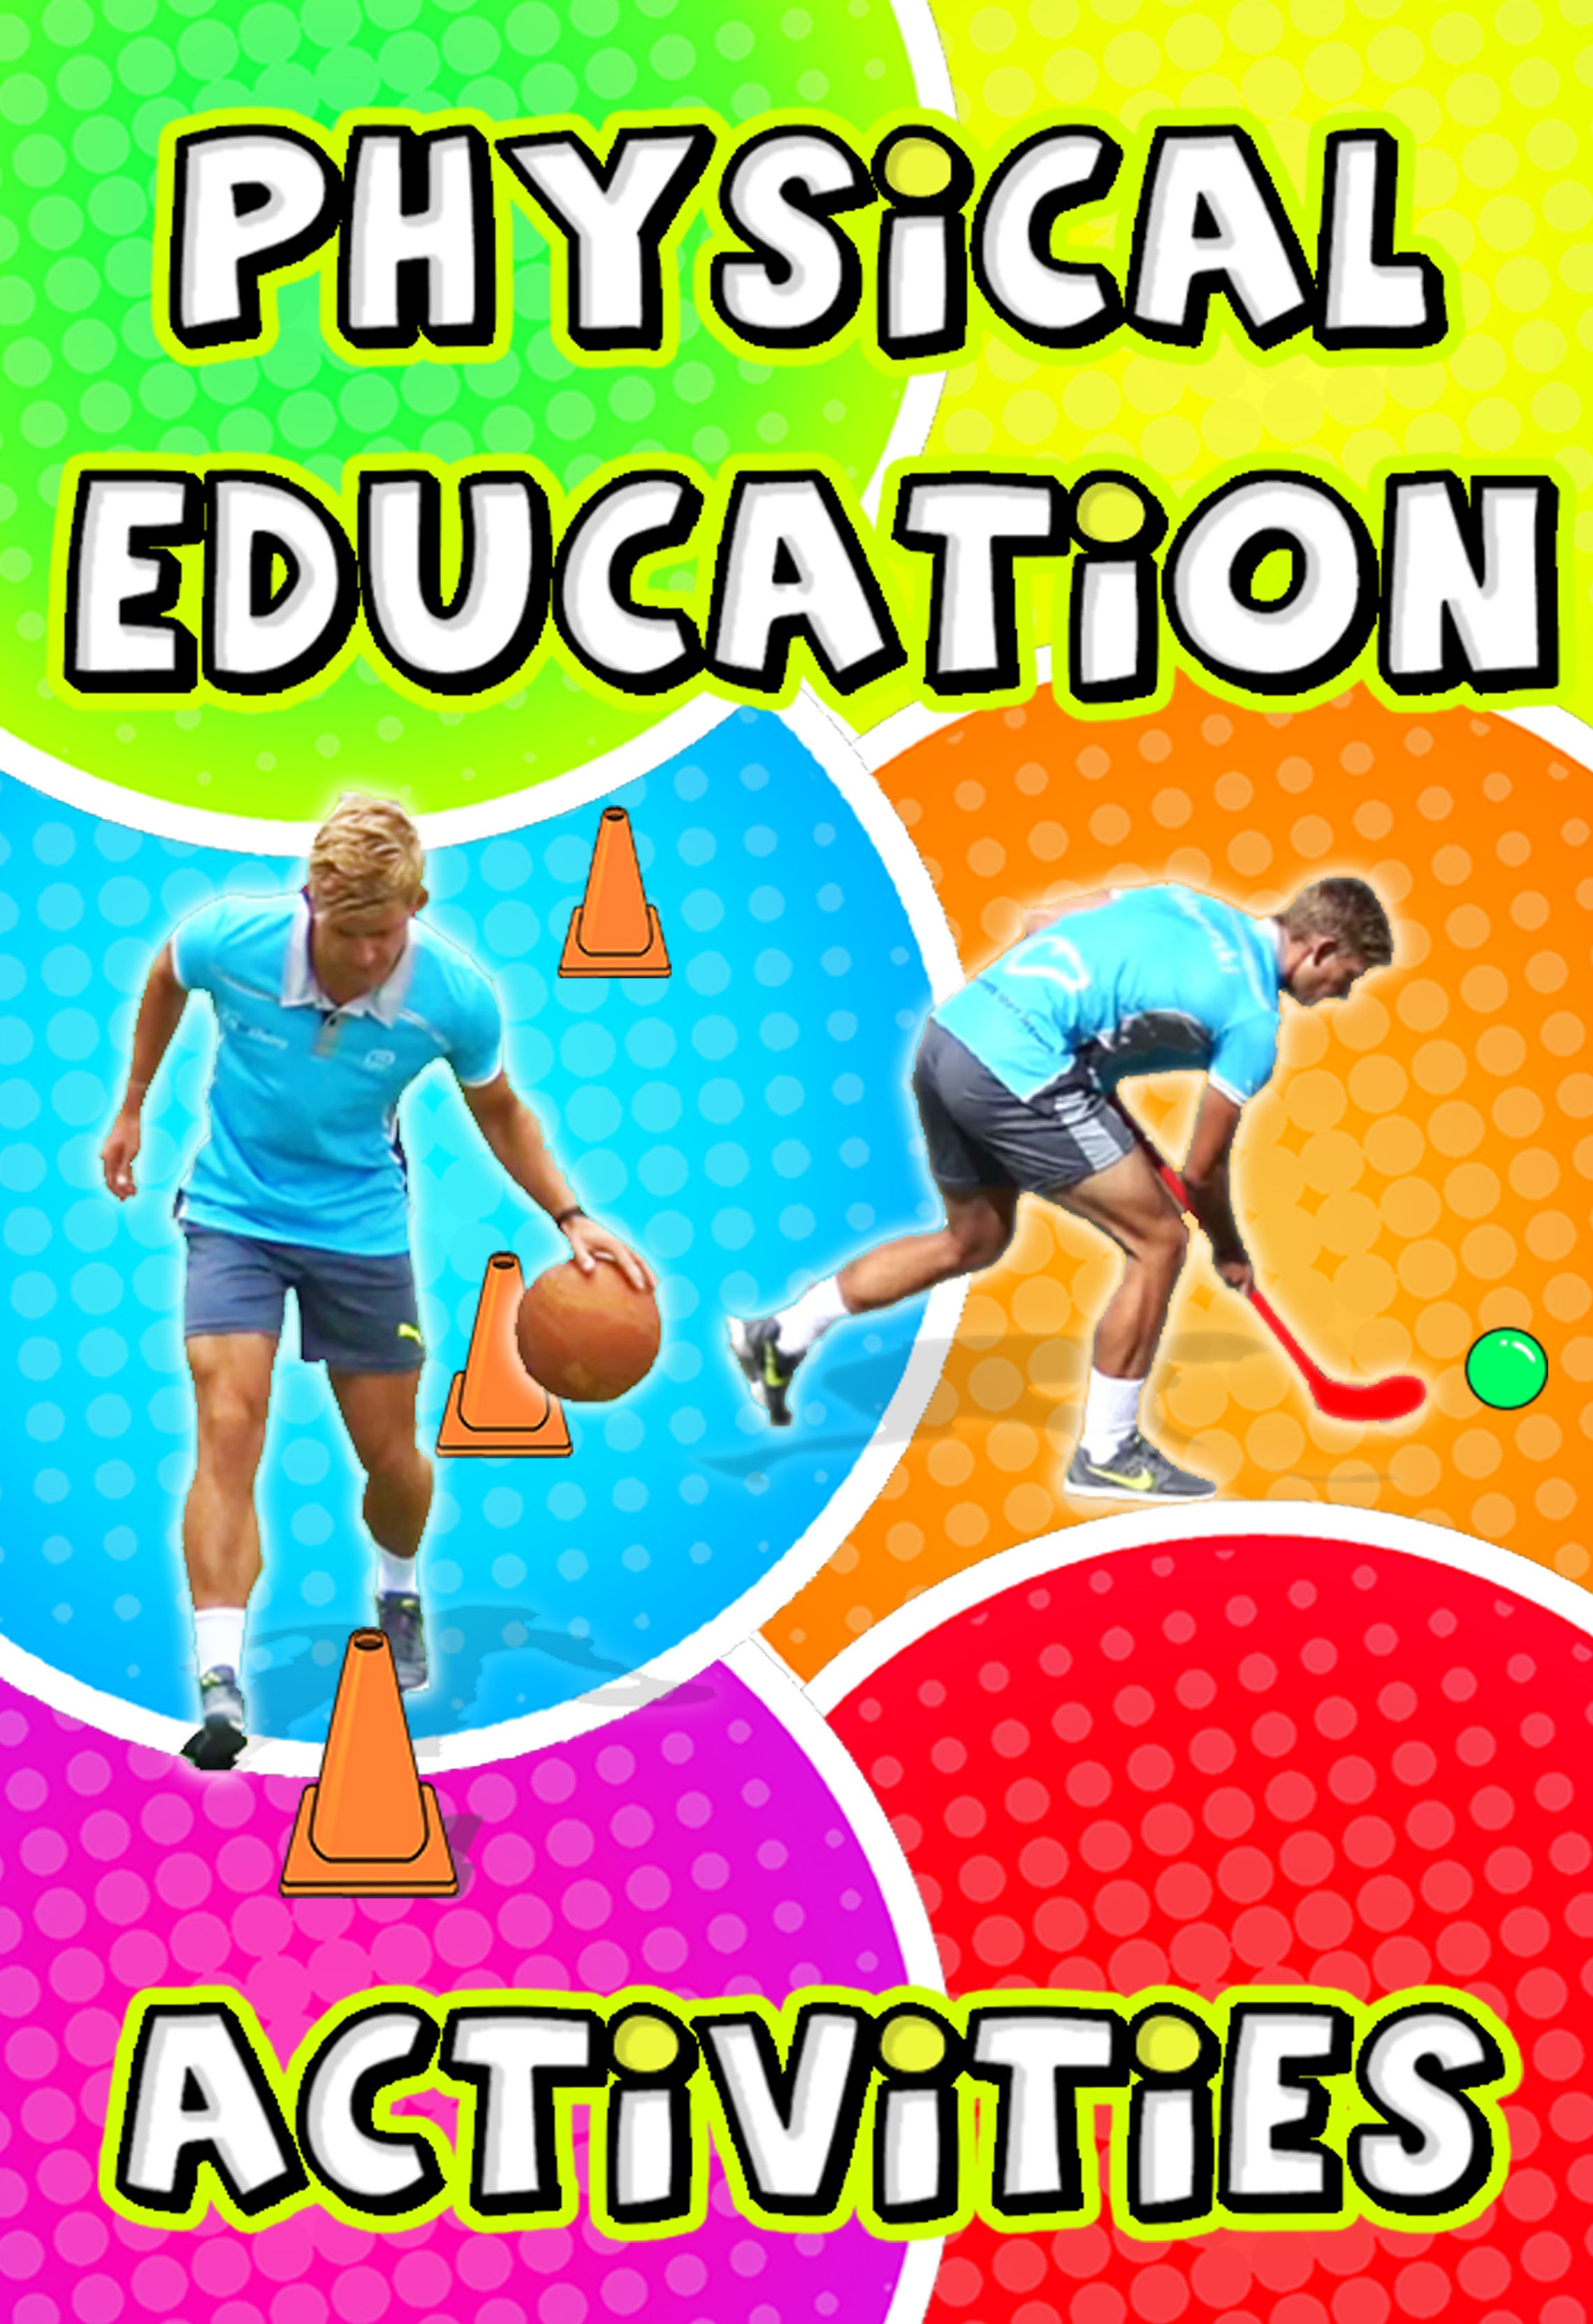 A Huge Collection Of Physical Education Games Skills Drills Activities Elementary Pe In 2020 Physical Education Games Physical Education Homeschool Programs